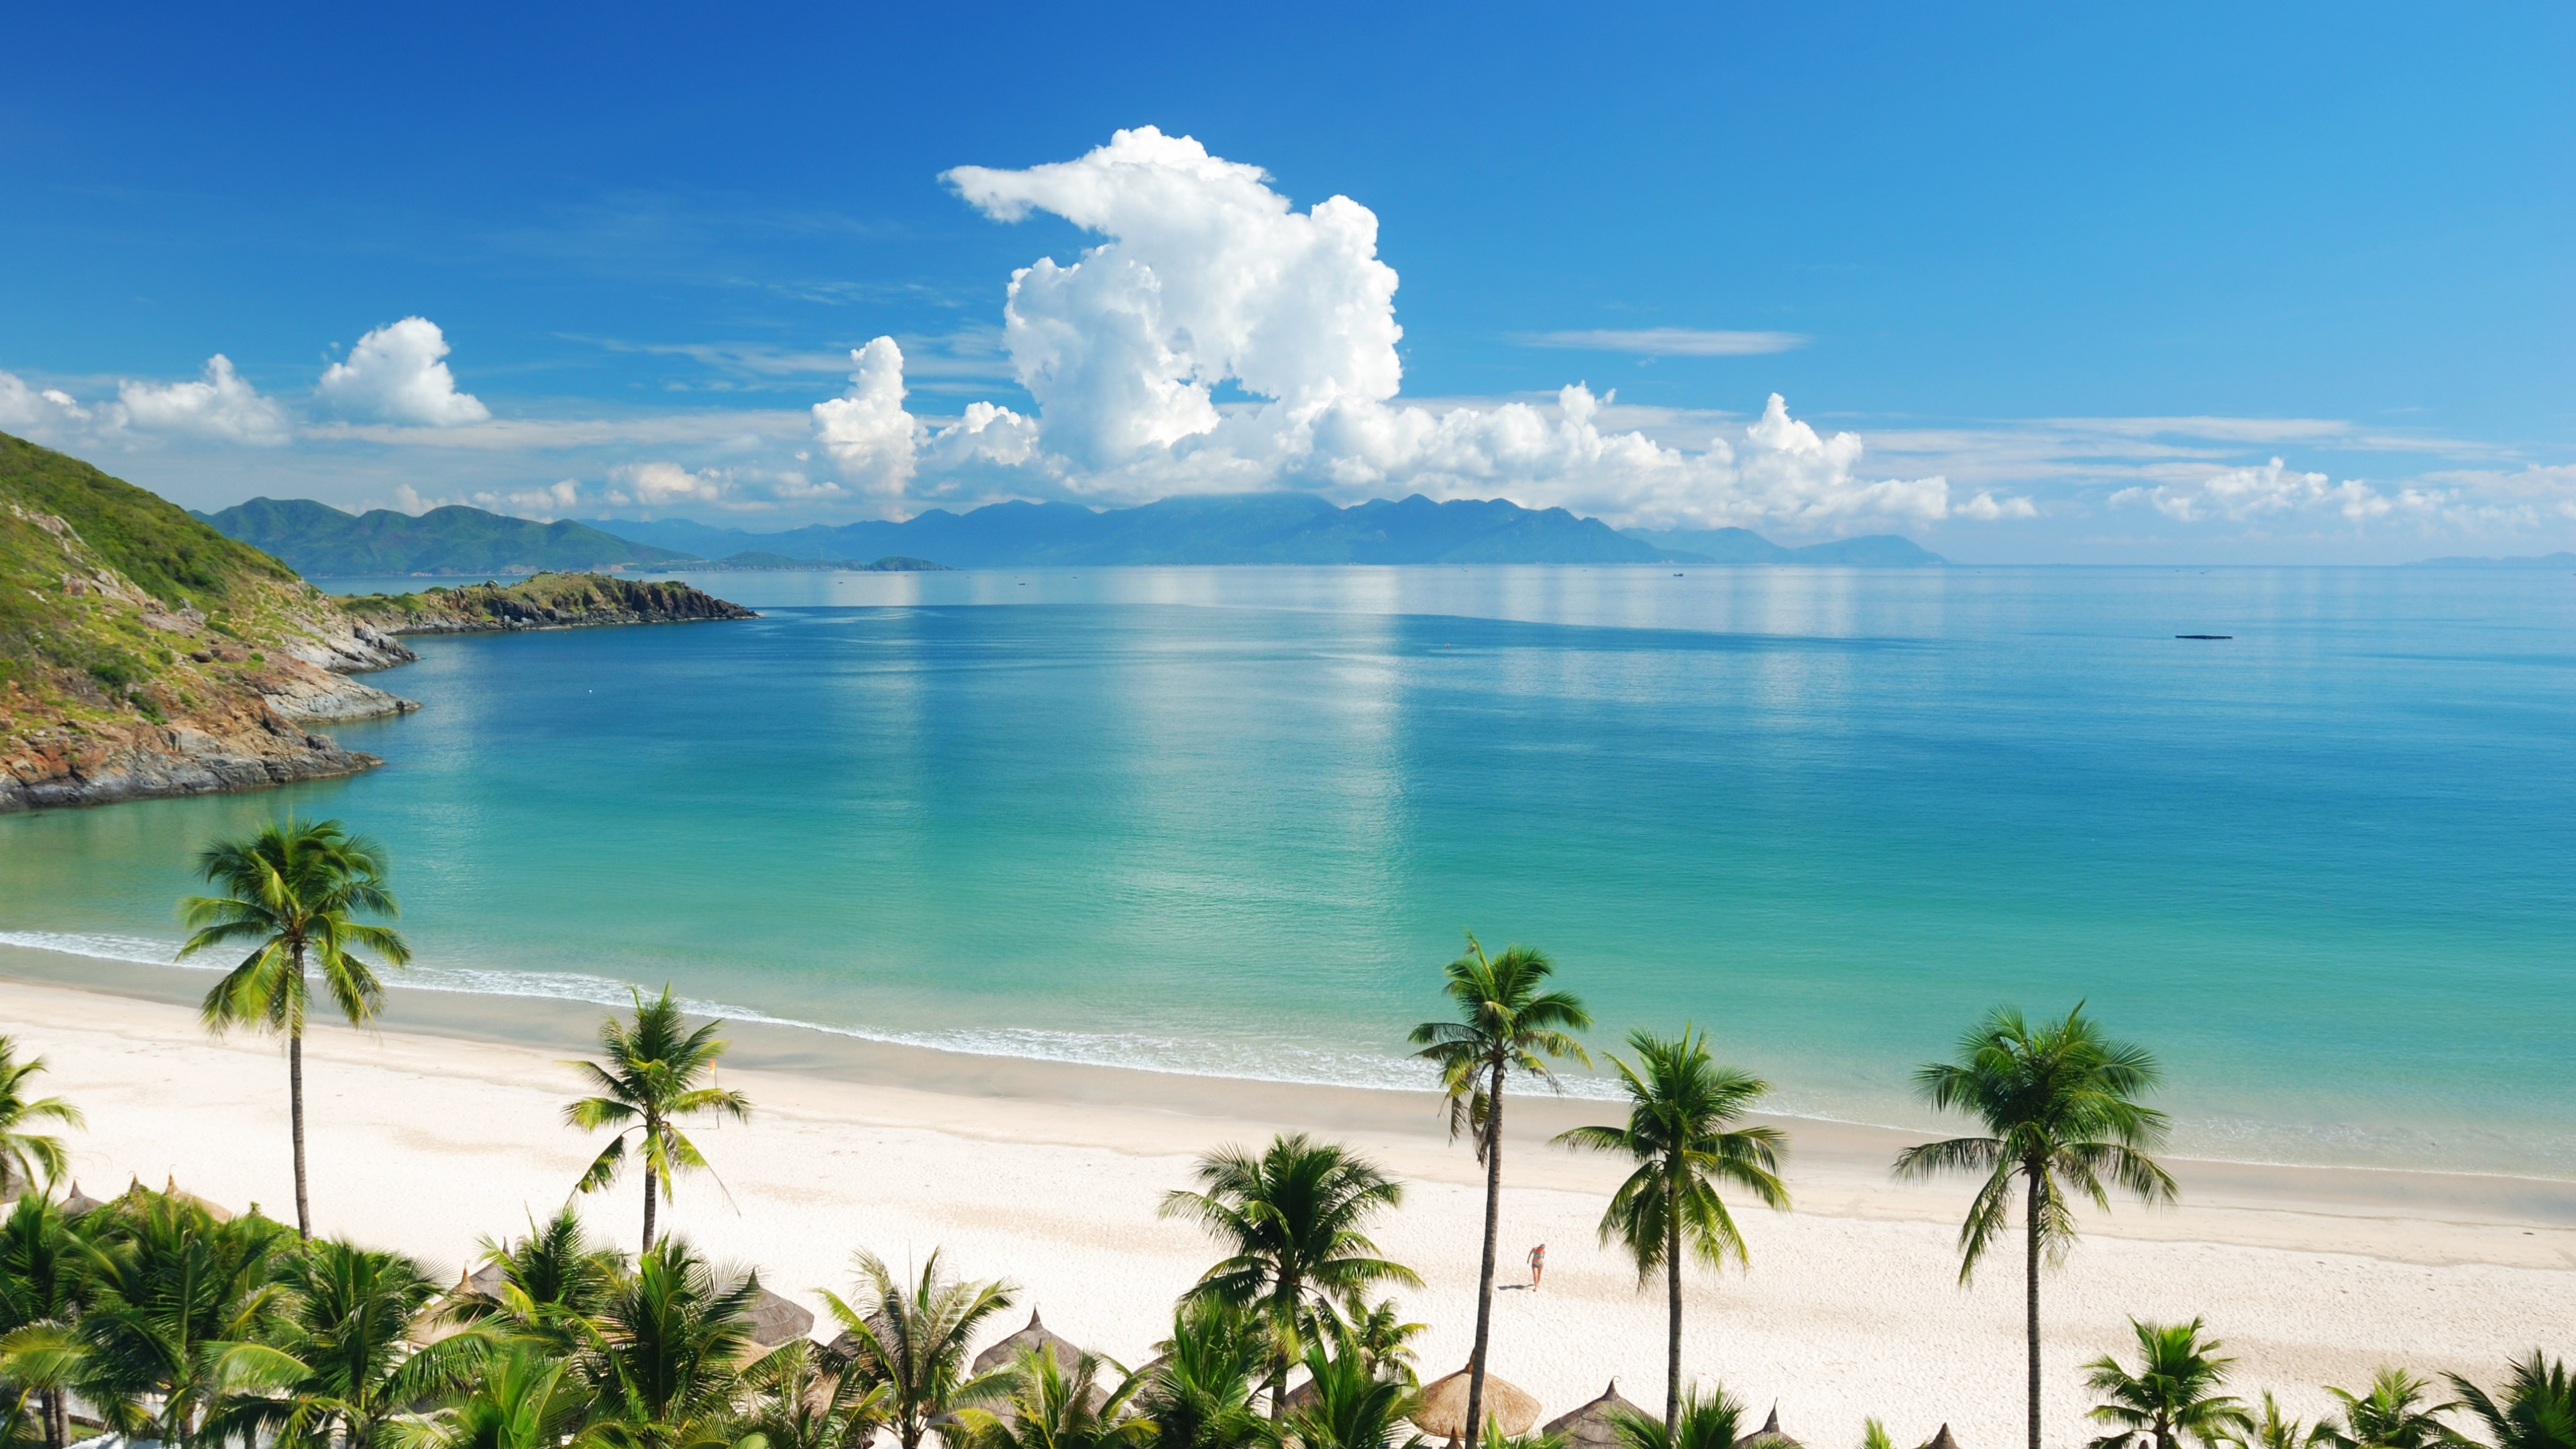 Awesome Panoramic Beach View Wallpaper Wallpaper